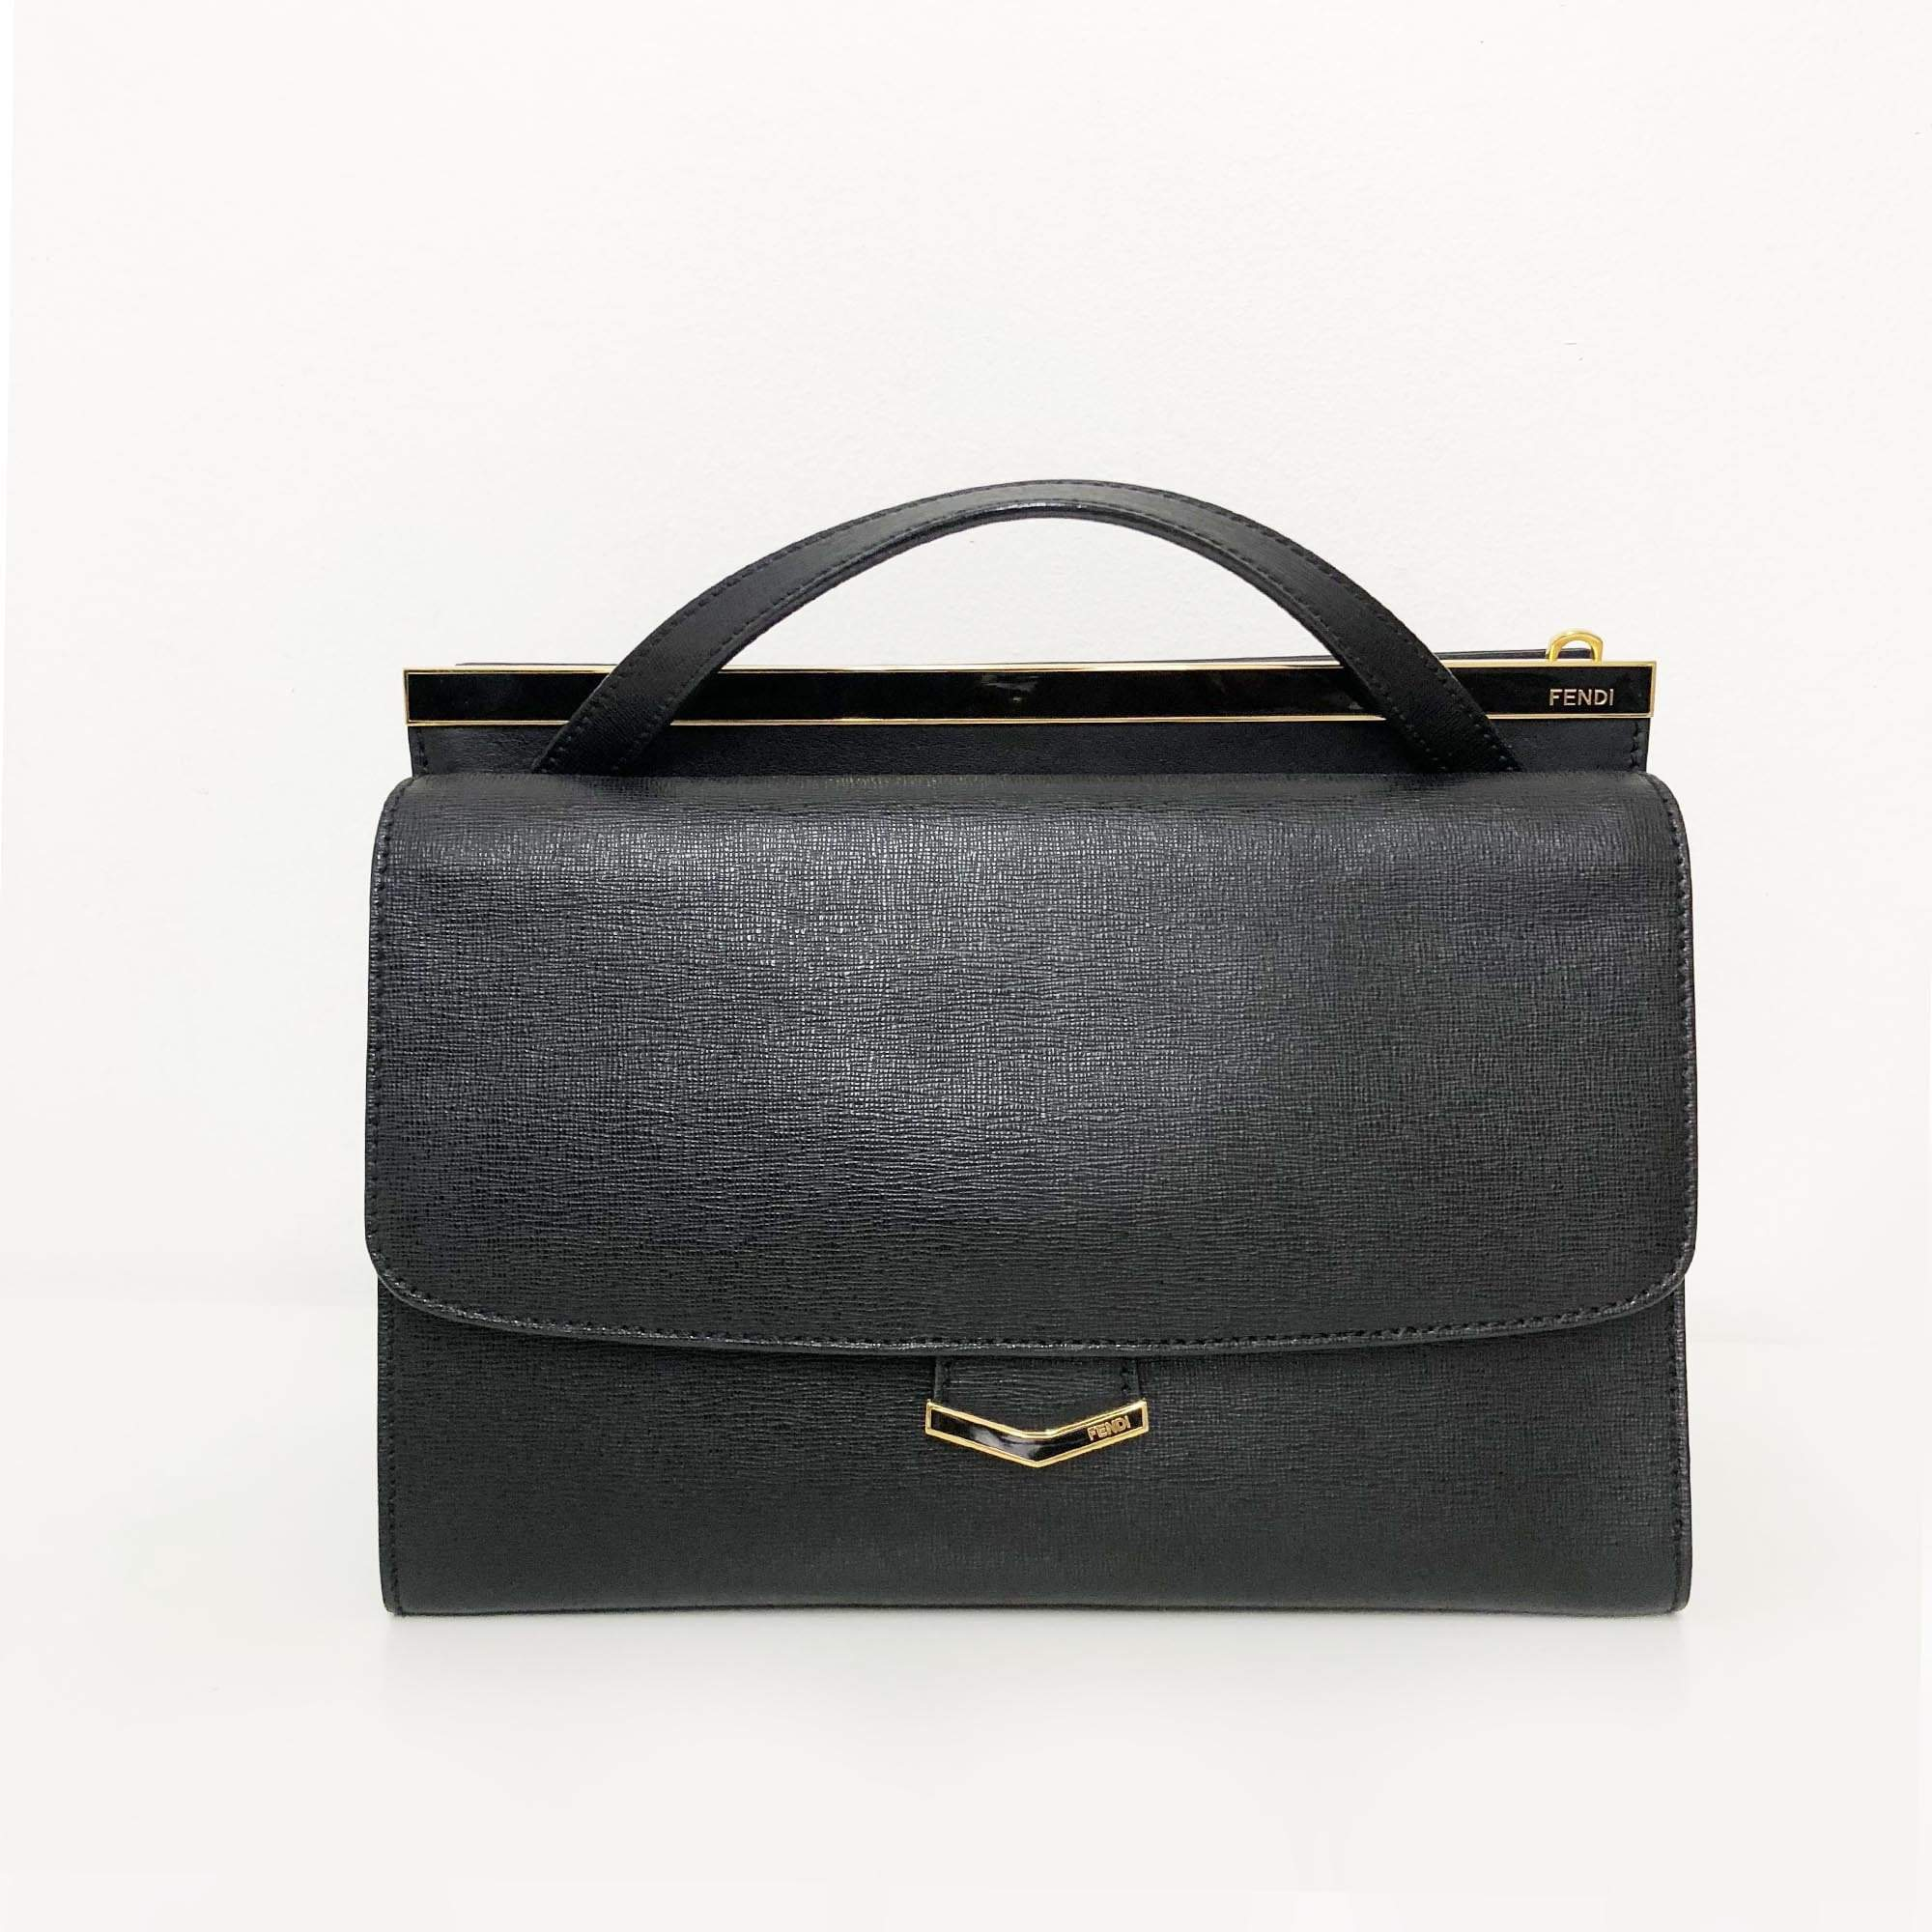 Fendi Black Leather 'Demi Jour' Split Shoulder Bag